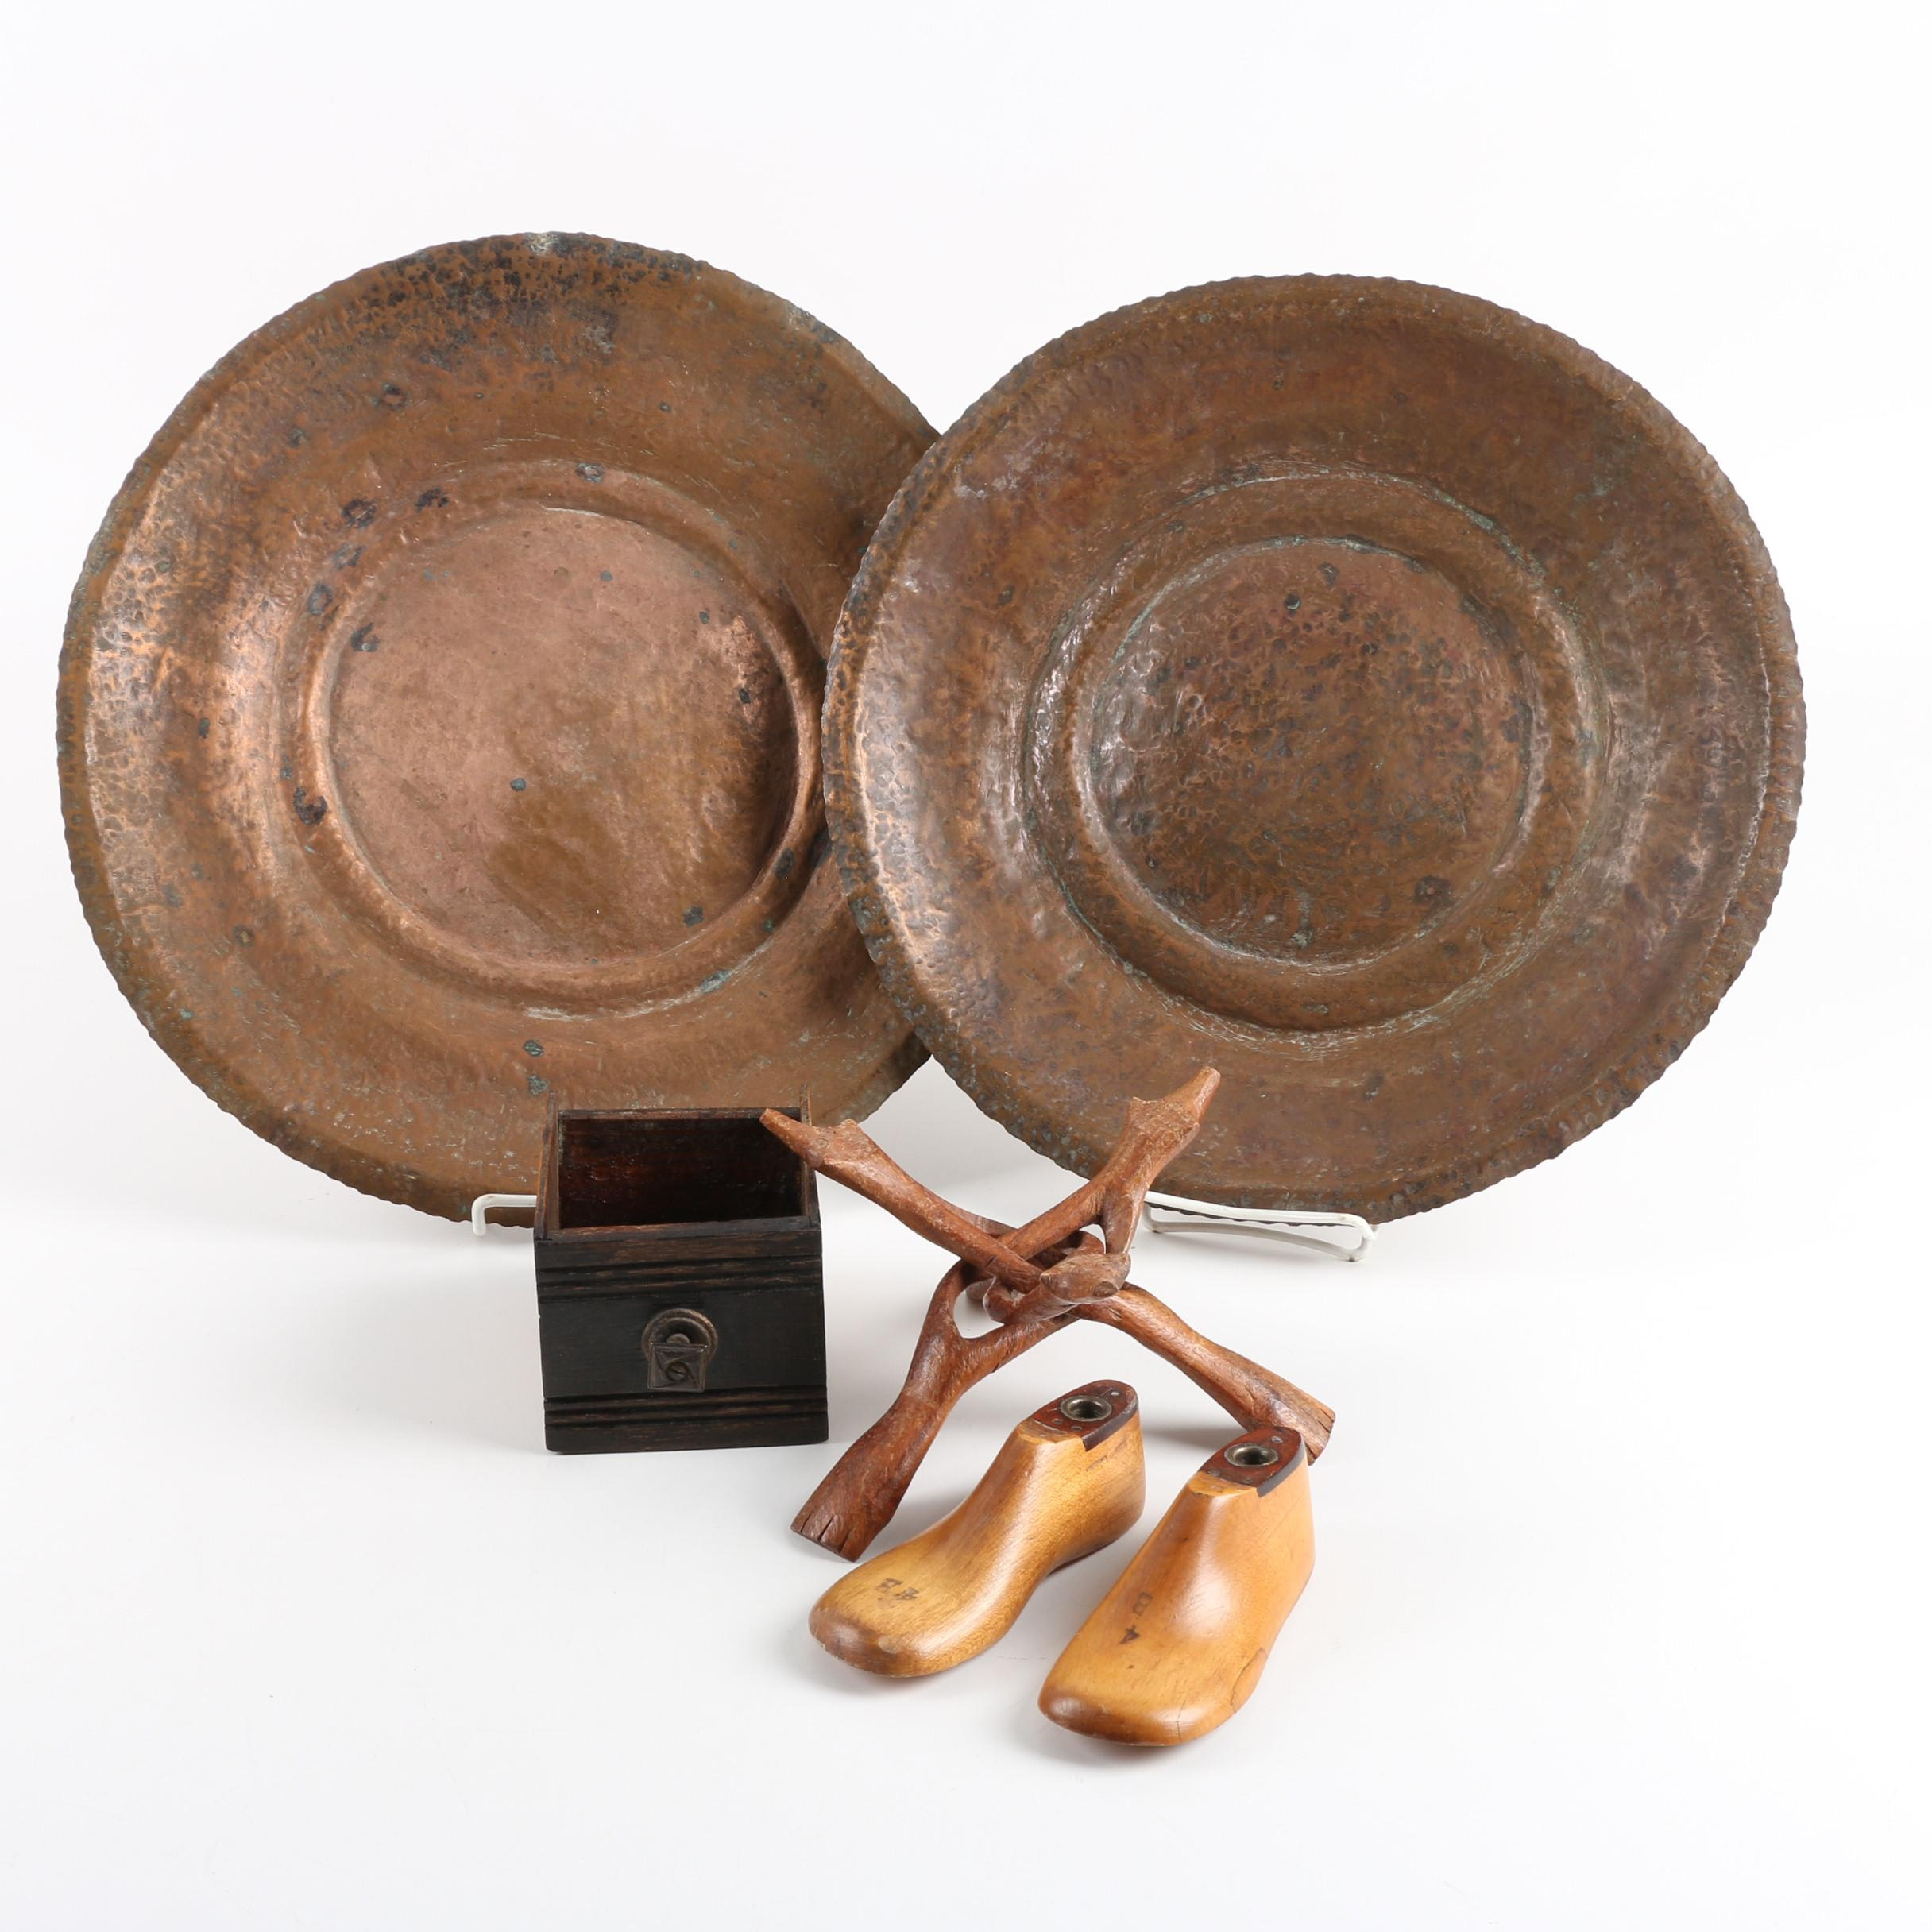 Vintage Hammered Copper Chargers with Wooden Decor